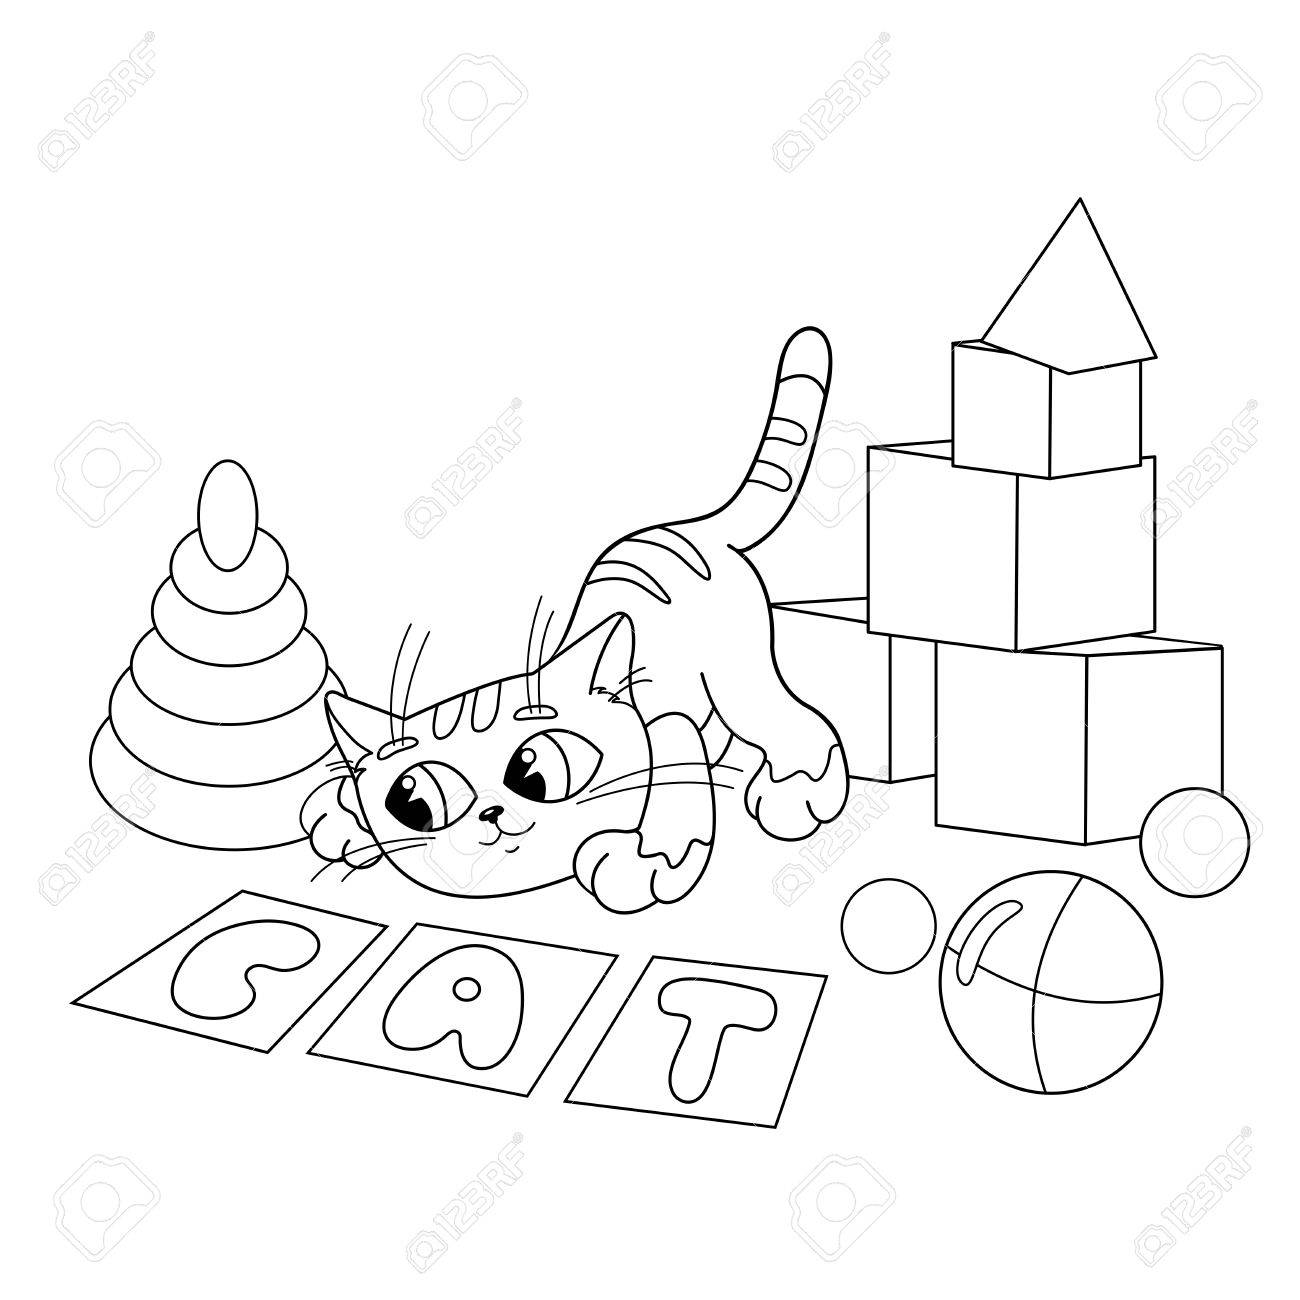 Coloring Page Outline Of Cartoon Cat Playing With Toys. Coloring ...